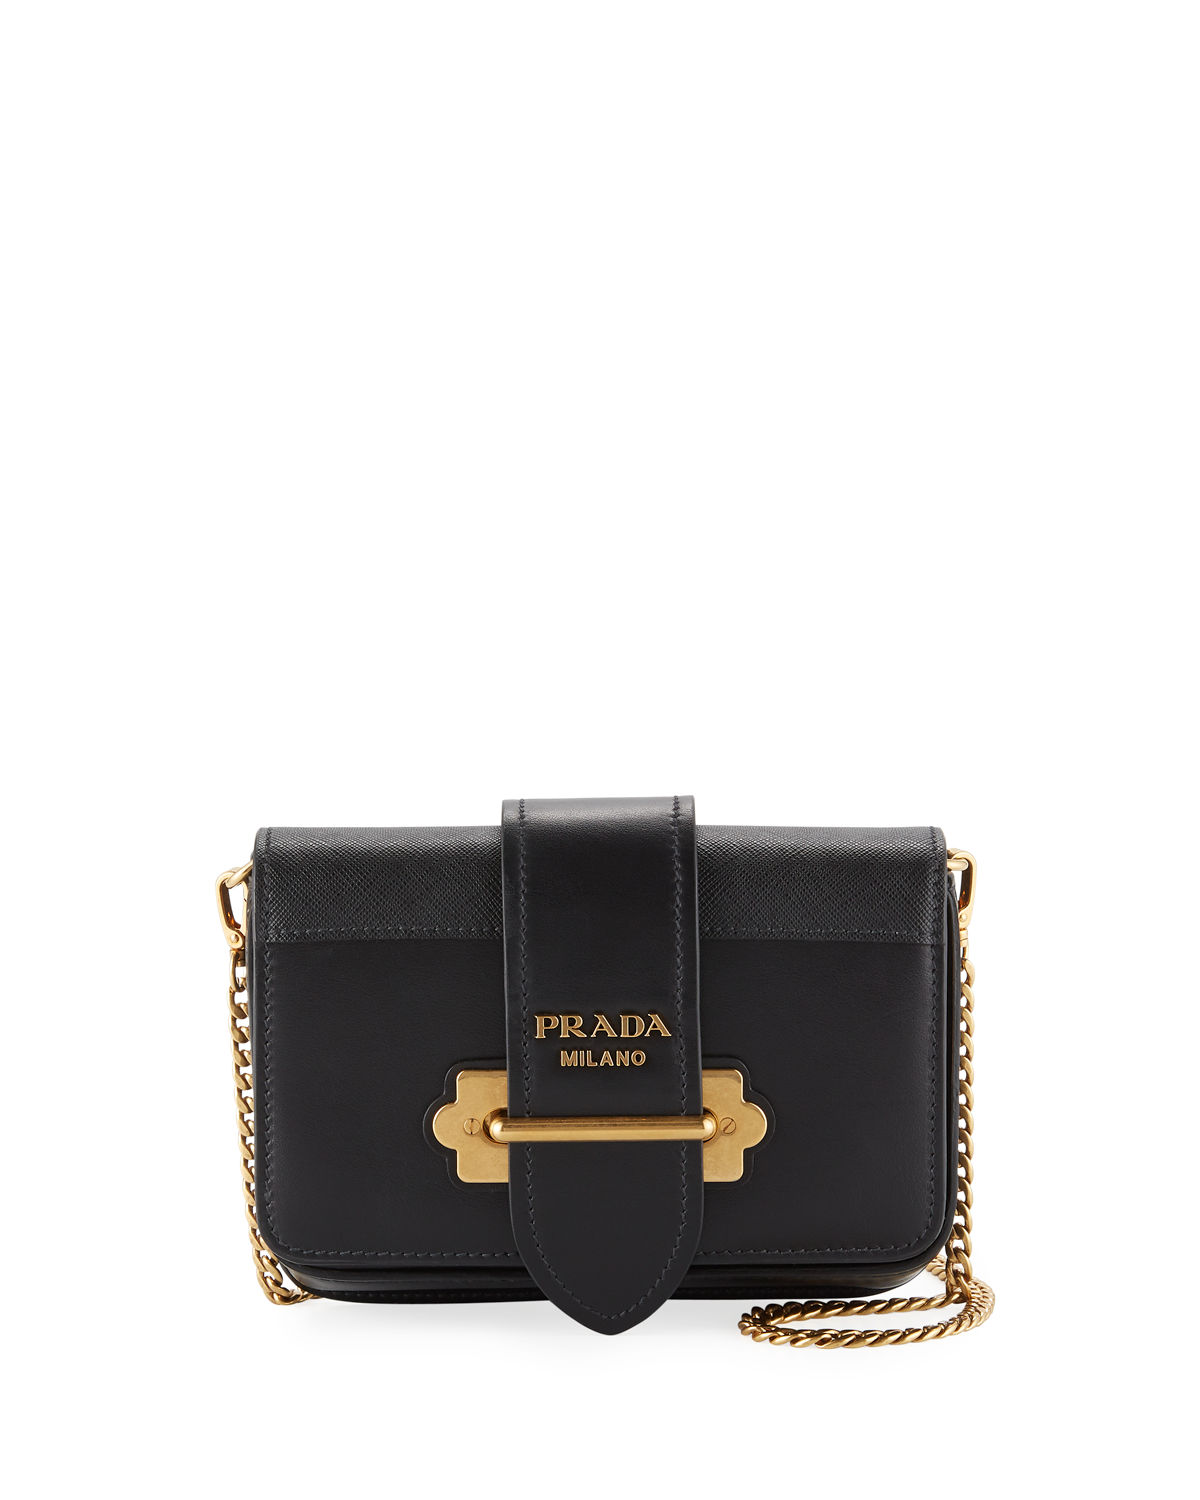 6f120db7f30714 Prada Cahier Belt Bag Price | Stanford Center for Opportunity Policy ...